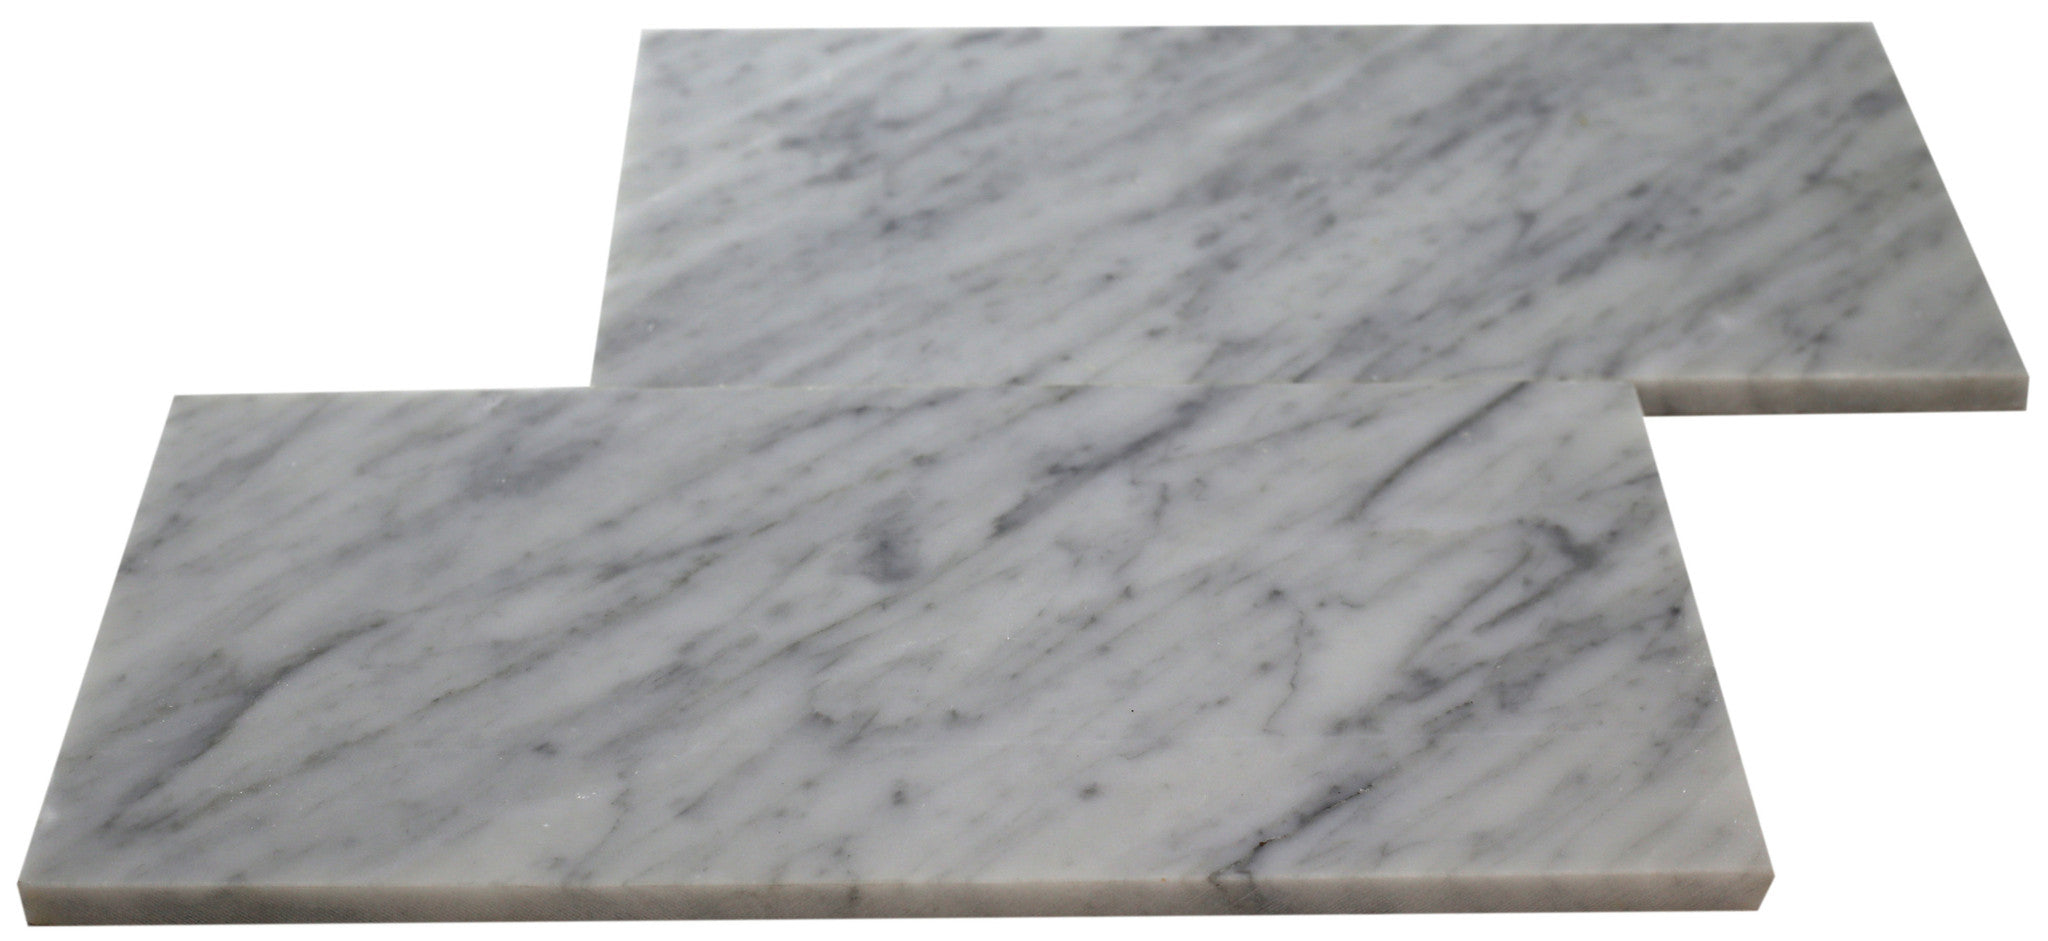 Bianco Carrara 6x12 Subway Tile Honed Marble Tile Depot